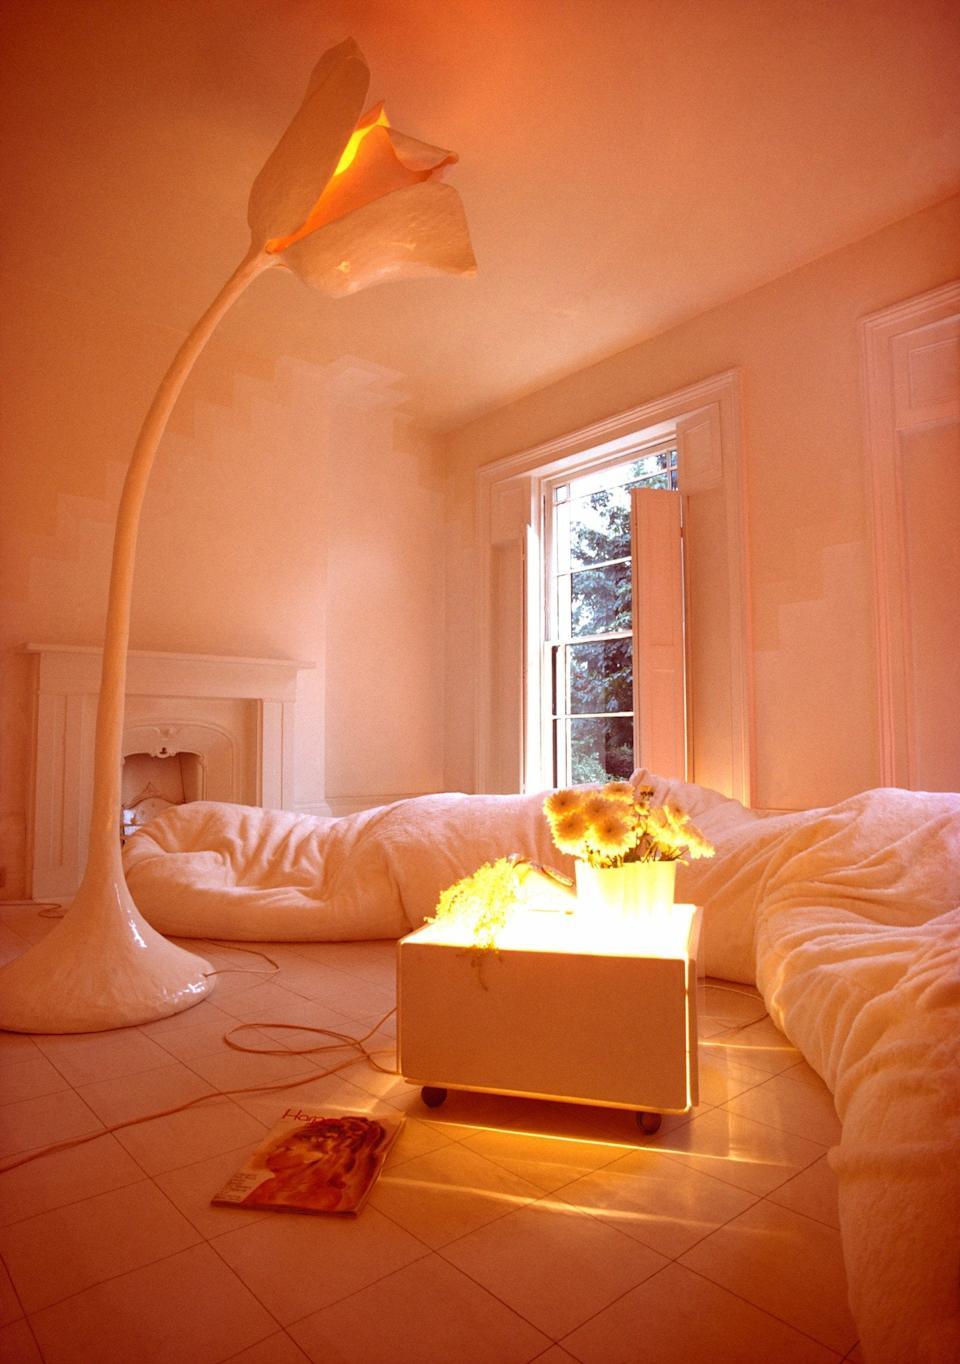 Tall flower-shaped floor lamp and serpentine cushion sofa in Sixties living room designed by Max Clendinning - Alamy